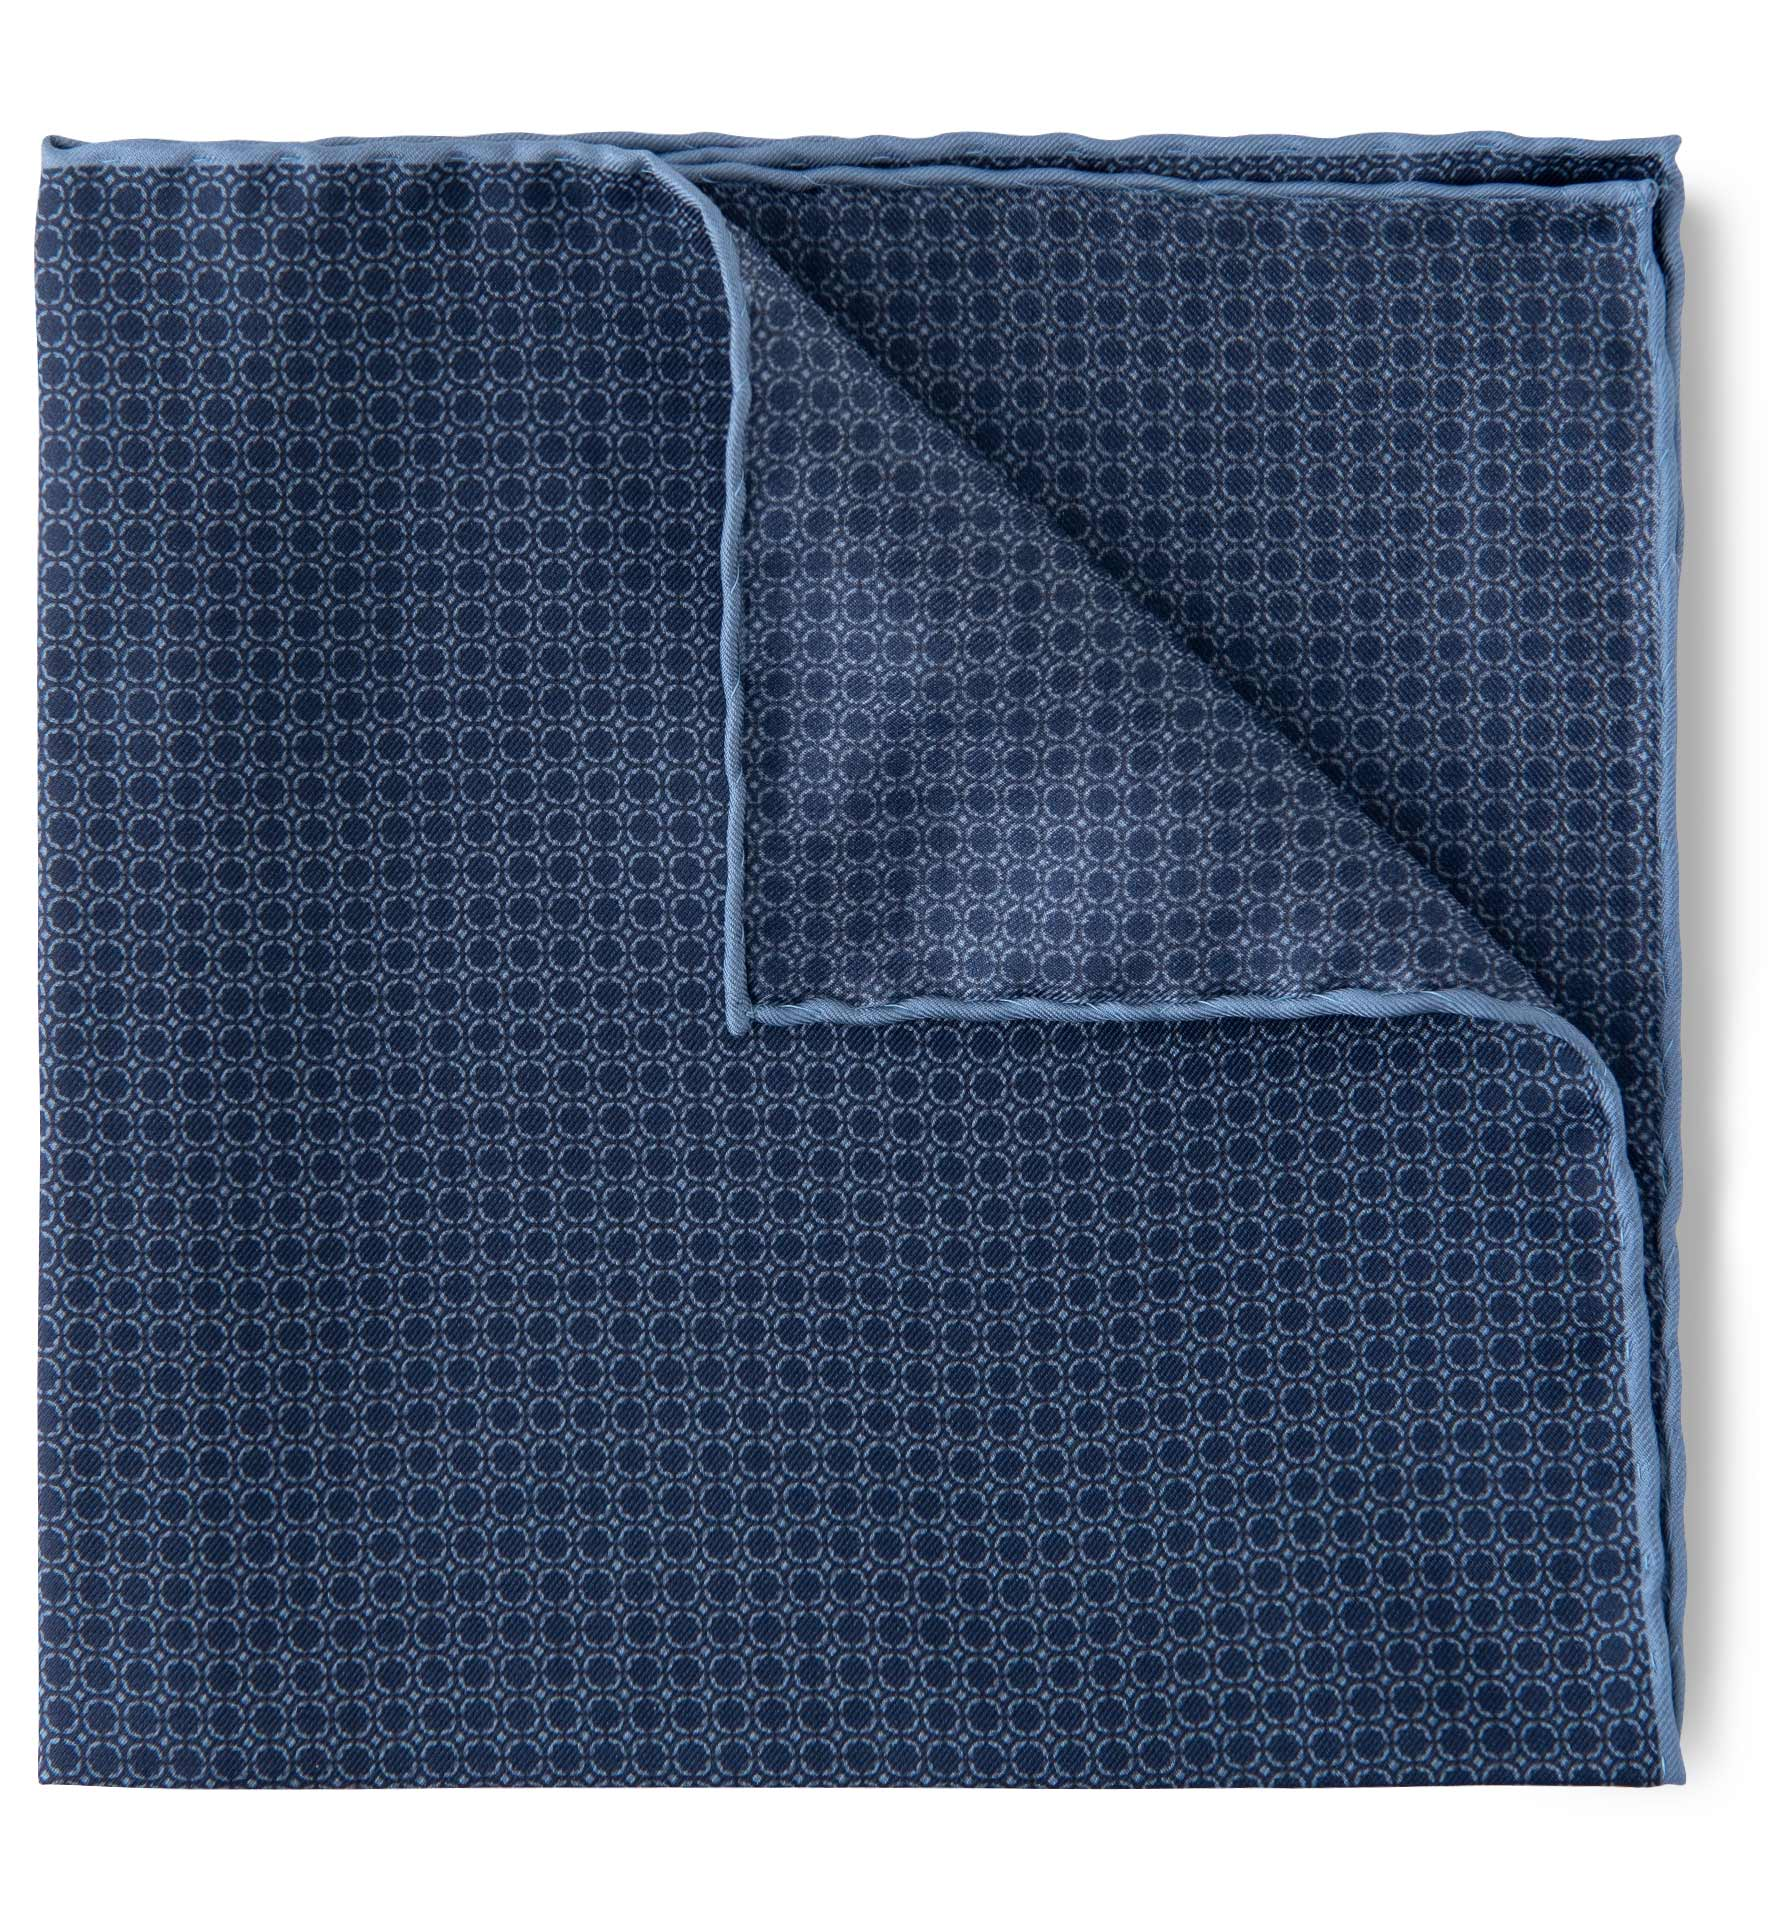 Zoom Image of Navy and Light Blue Silk Pocket Square